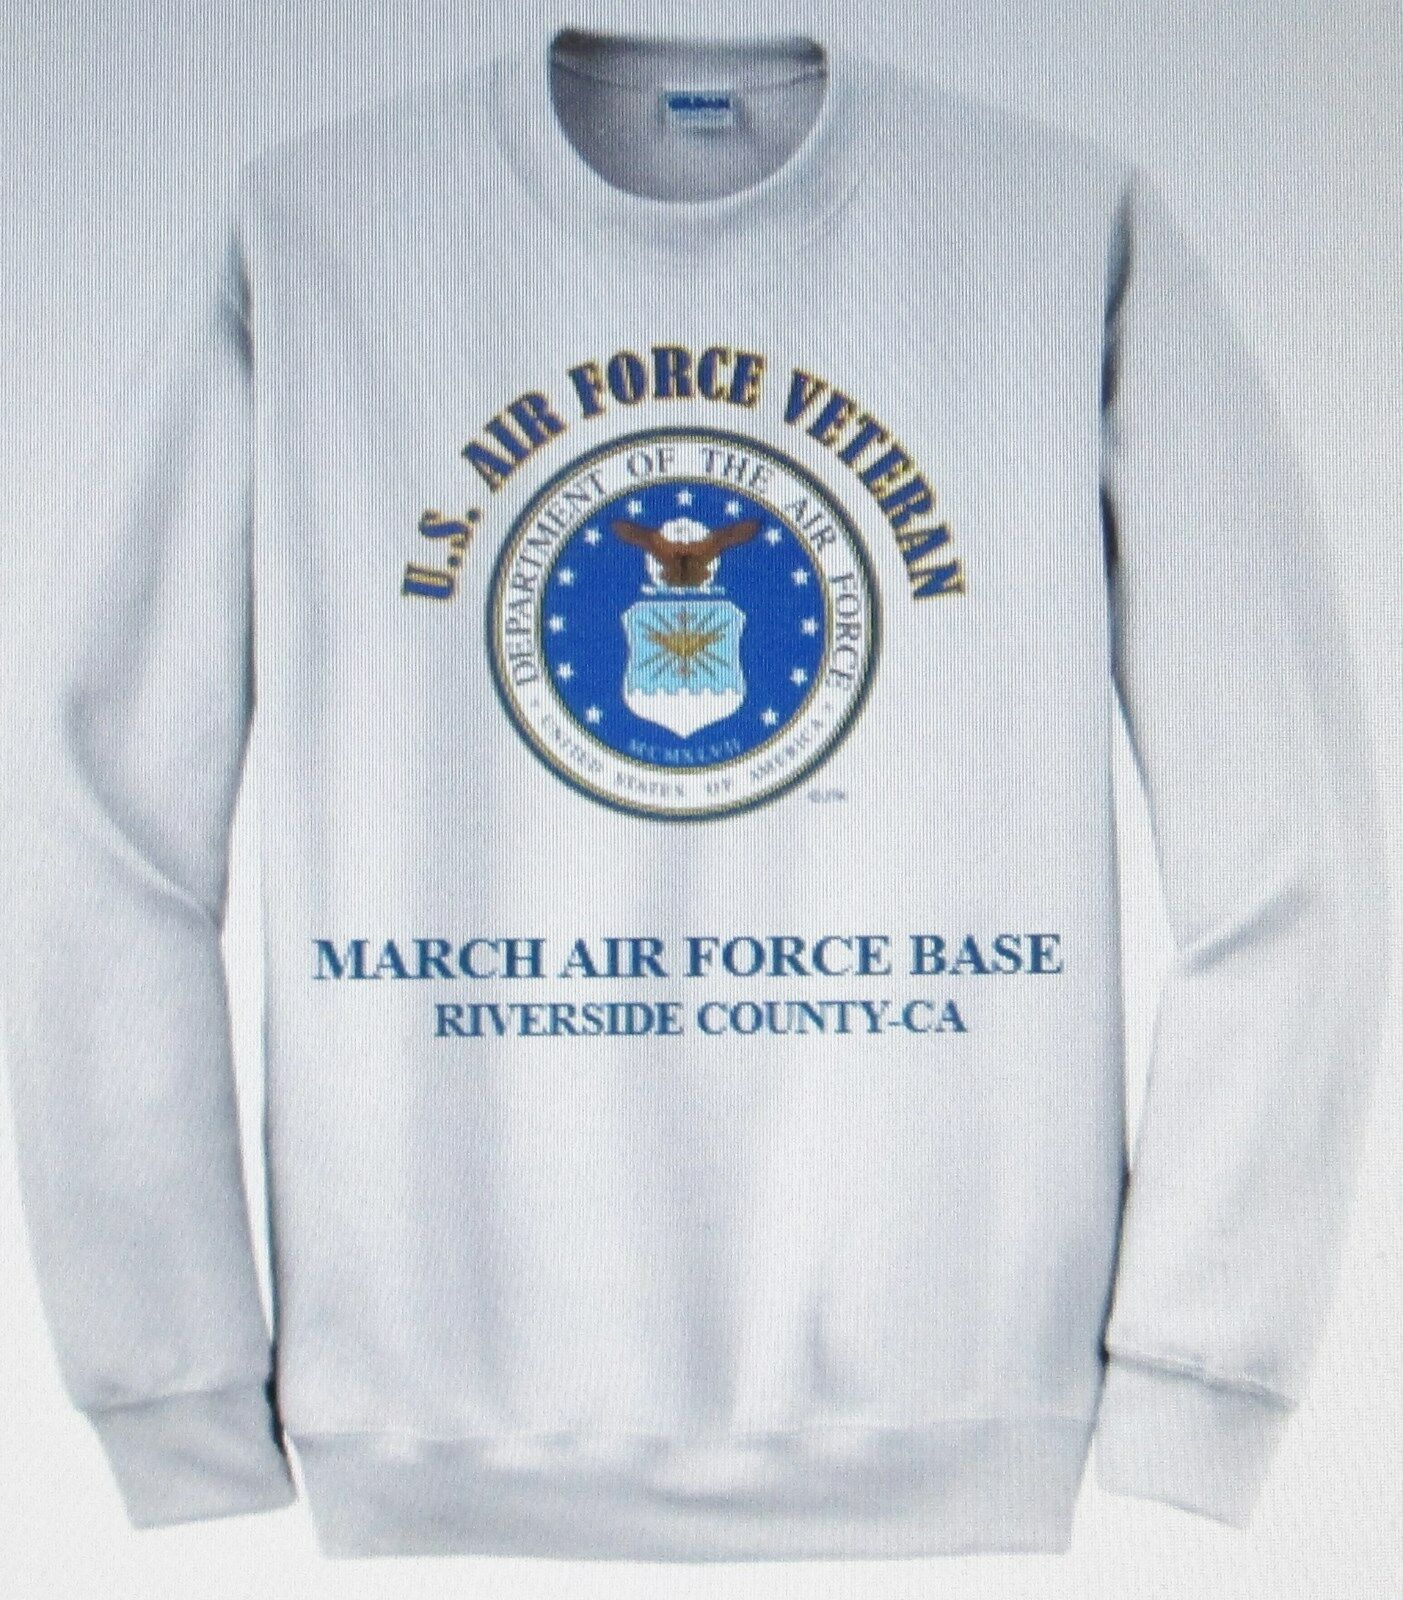 MARCH AIR FORCE BASE RIVERSIDE COUNTY-CA U.S. AIR FORCE EMBLEM SWEATSHIRT